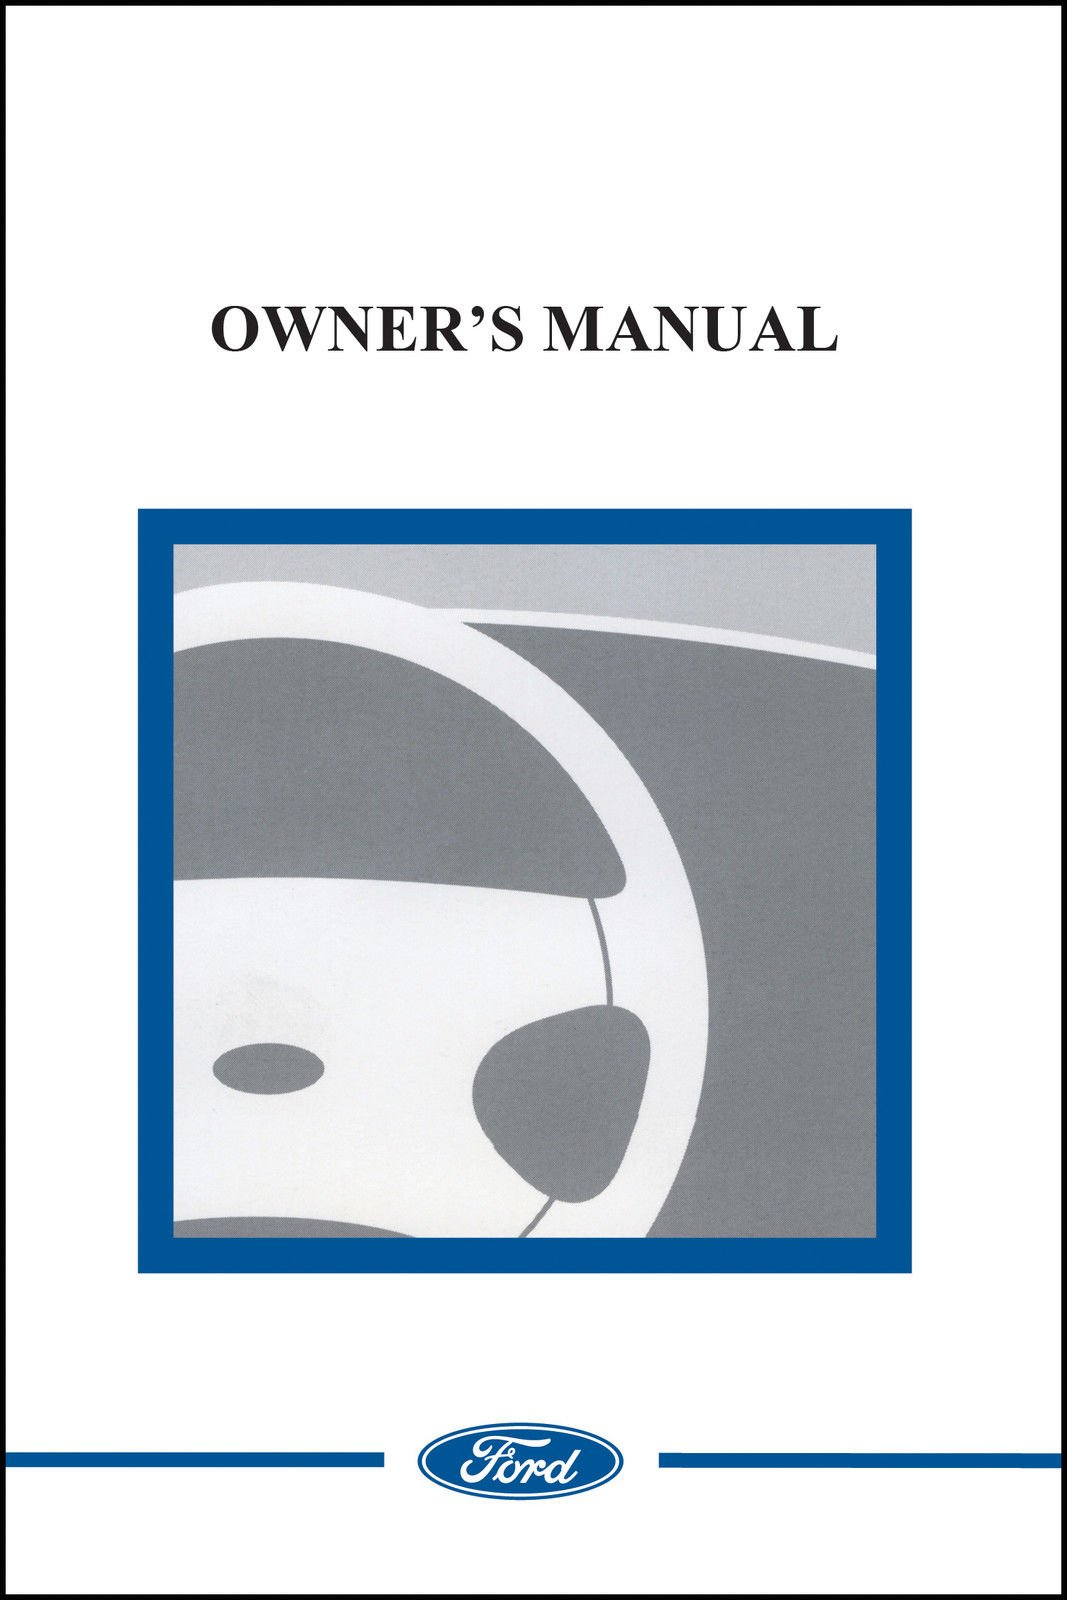 2008 ford edge owner's manual guide book paperback – 2008